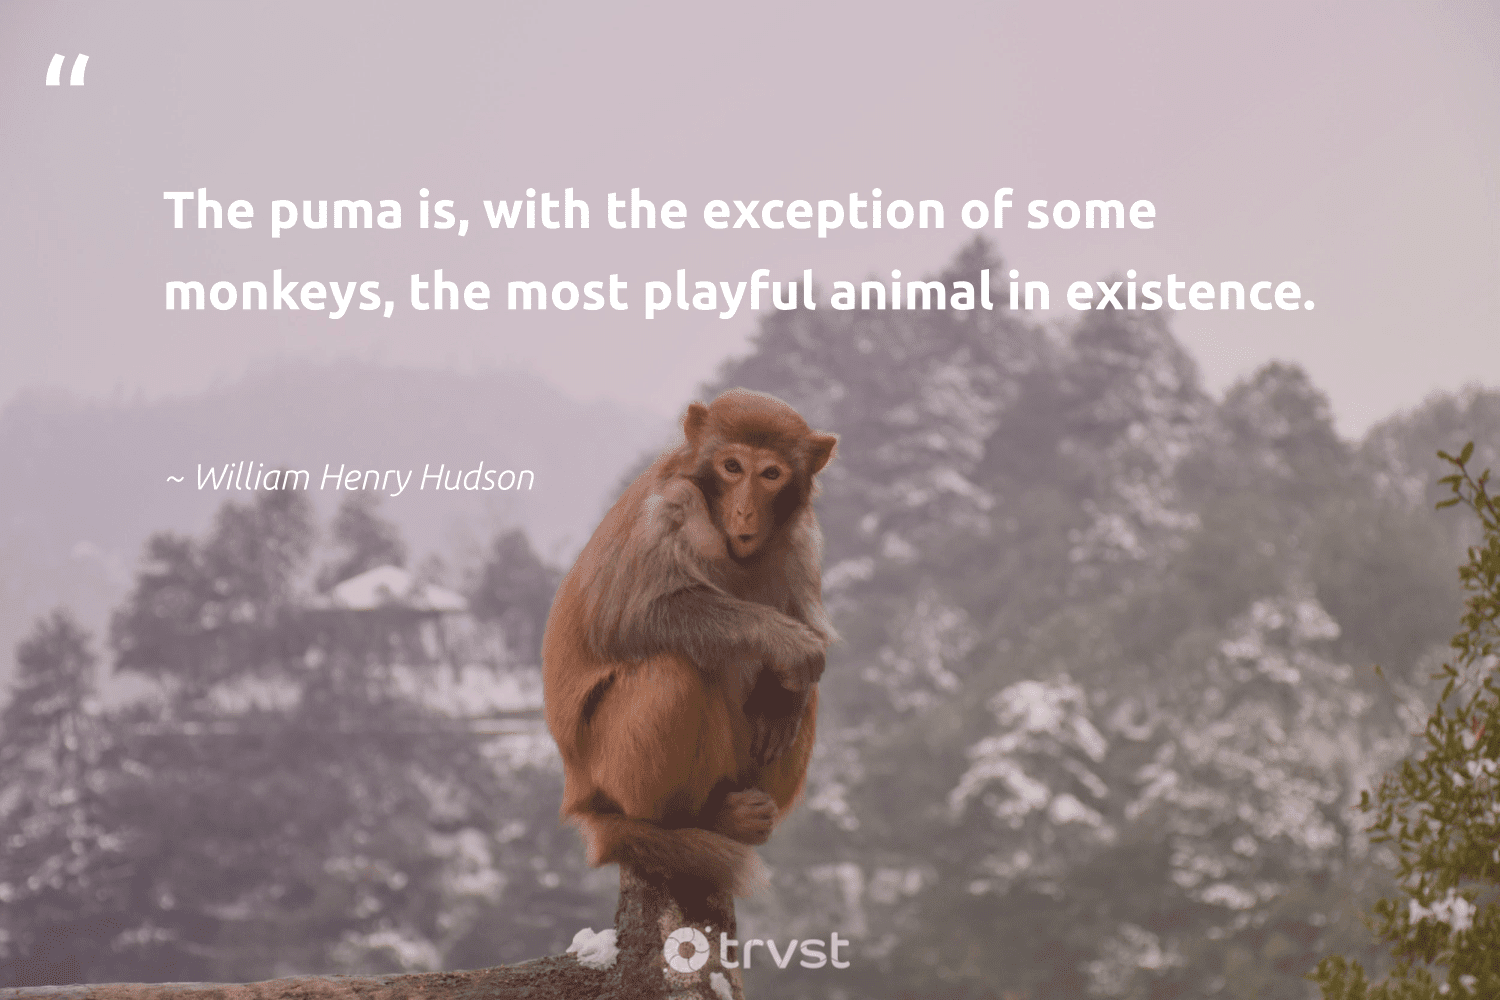 """The puma is, with the exception of some monkeys, the most playful animal in existence.""  - William Henry Hudson #trvst #quotes #animal #monkeys #animallovers #protectnature #natural #takeaction #wildlife #splendidanimals #forscience #planetearthfirst"